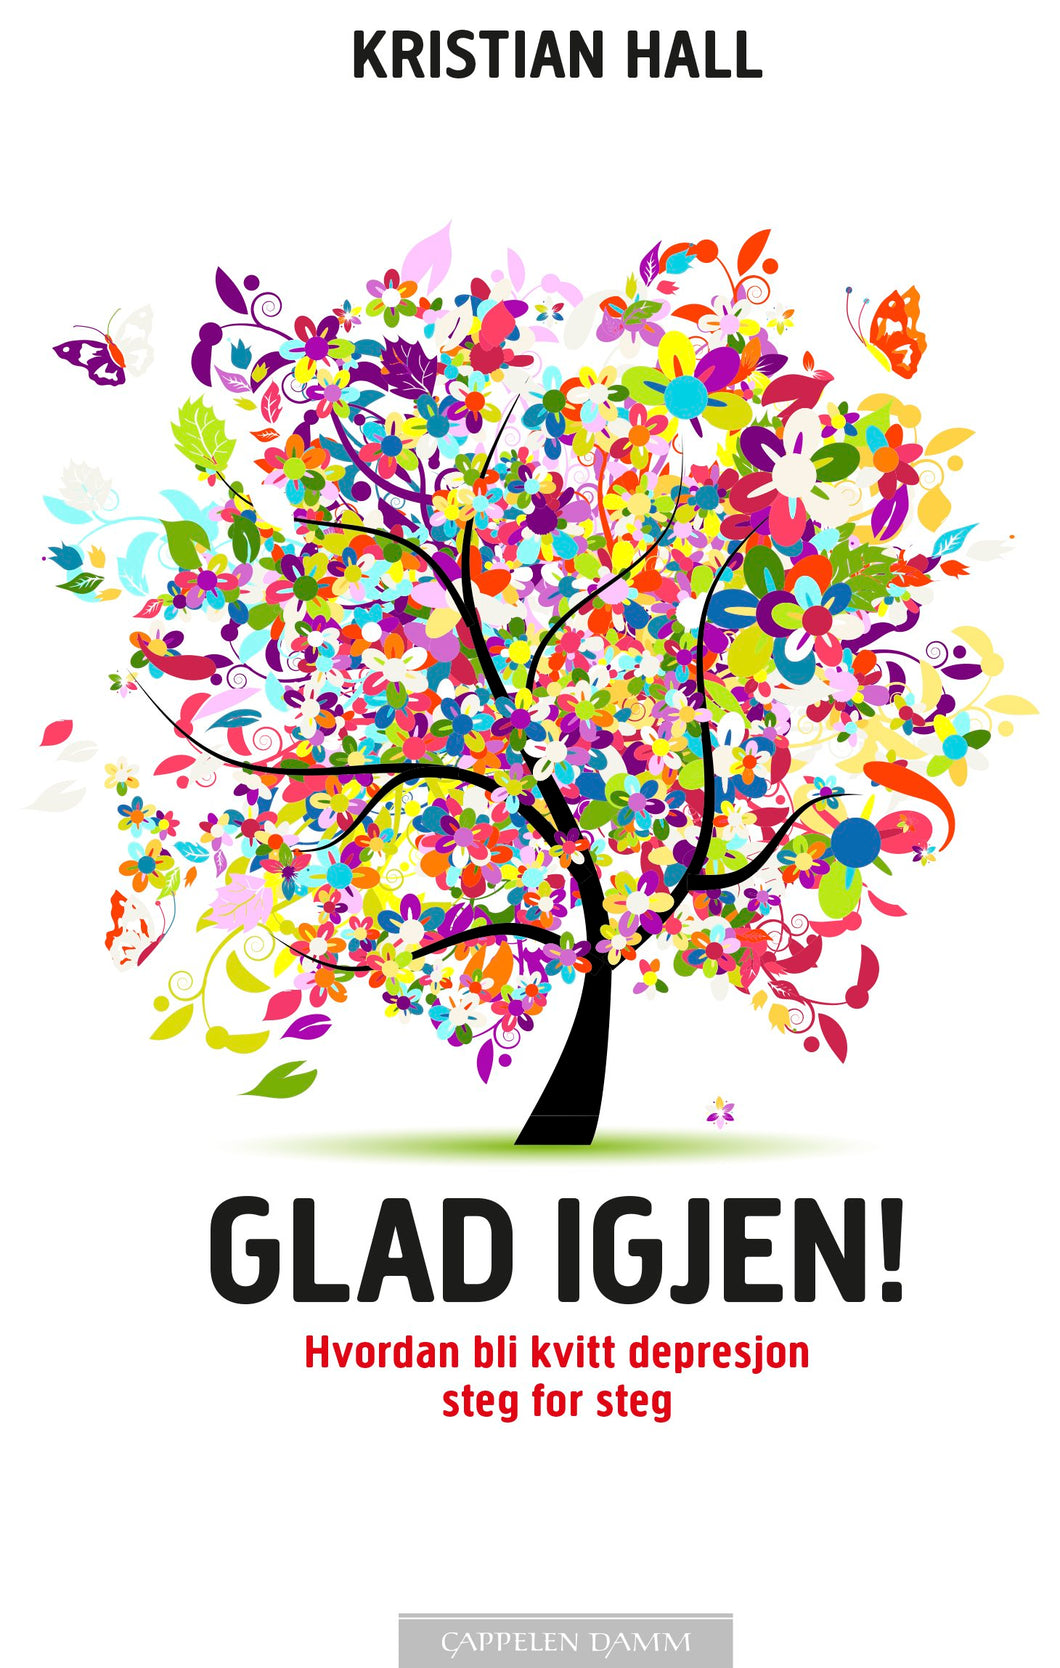 Glad igjen! - pocket